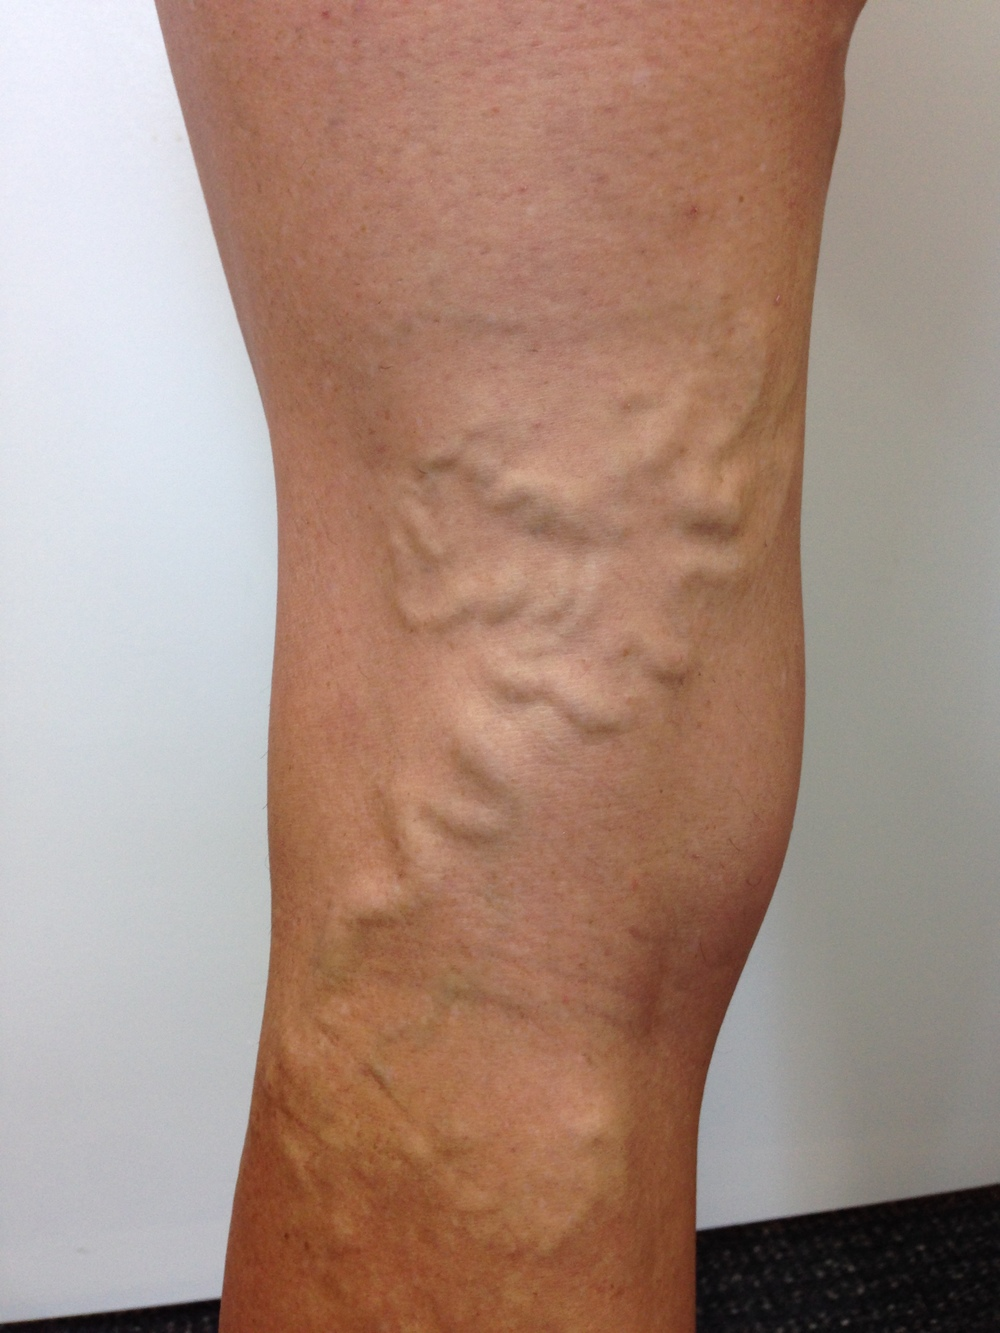 Patient presenting with Varicose Veins- Female, 43 years from Mackay.